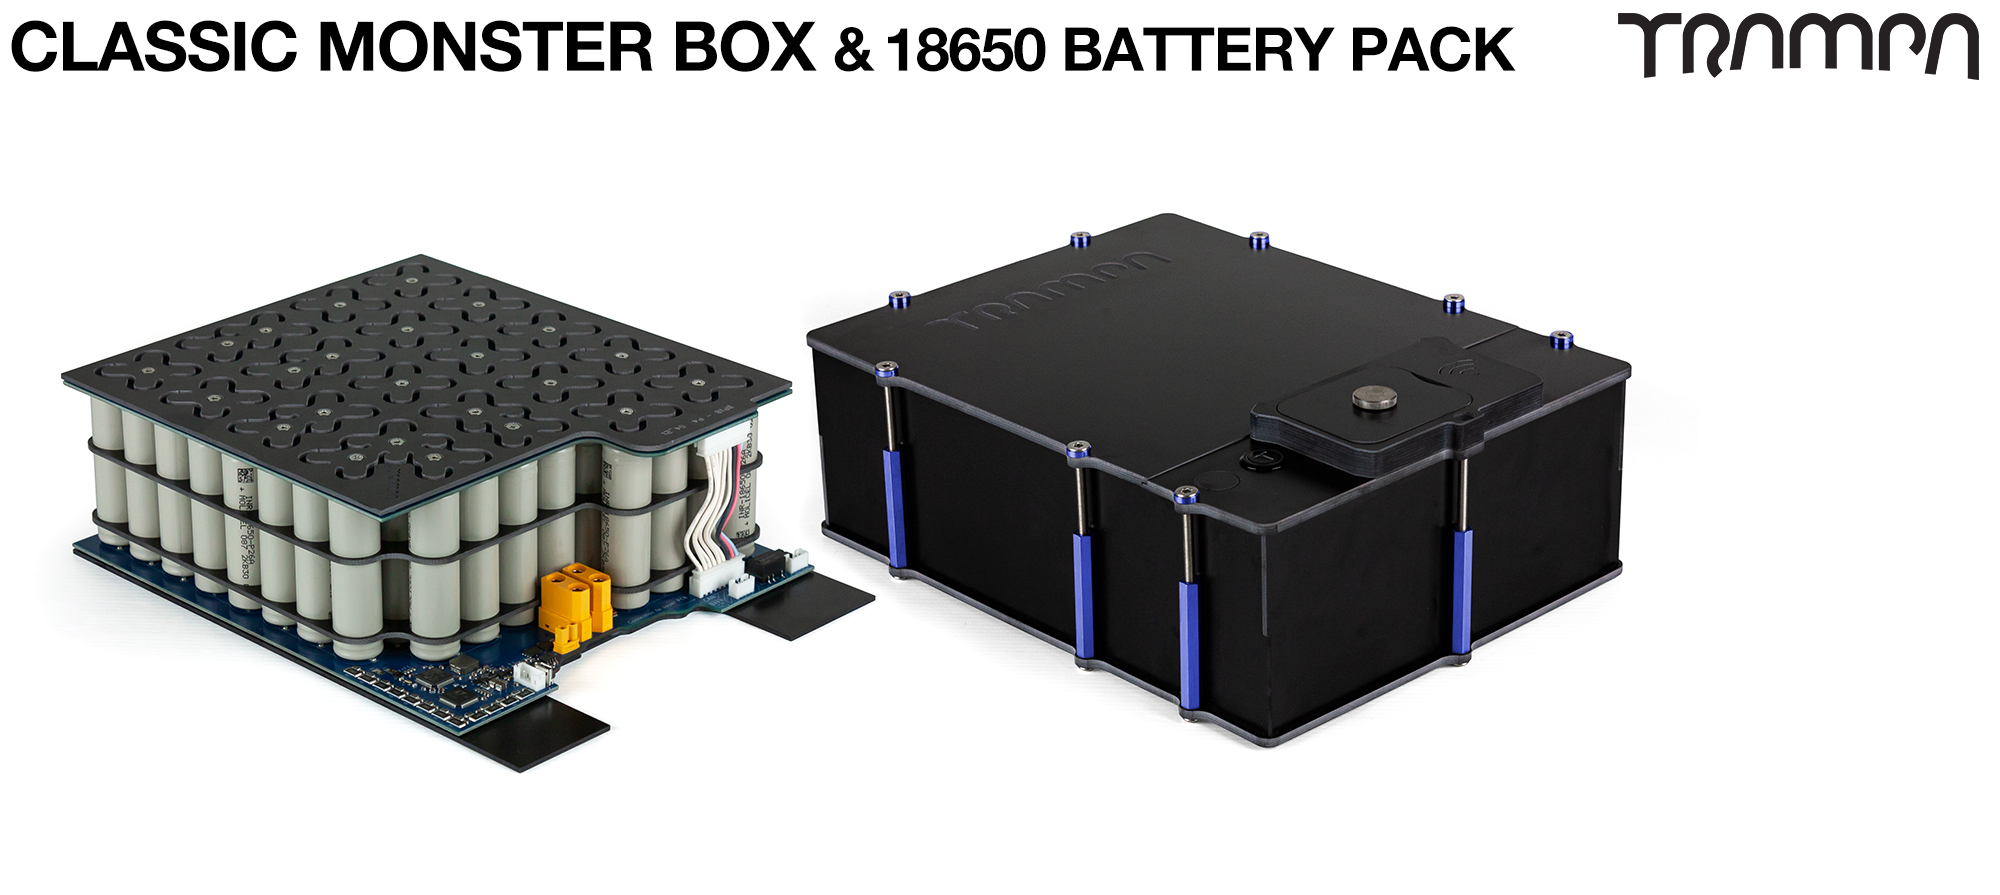 Classic MONSTER Box MkIV - with 18650 PCB Pack & 84x 18650 cells 12s7p 21Ah - NO VESC - PCB based Battery Pack with Integrated Battery Management System (BMS) with 84x 18650 cells to make 12s7p 21A - UK CUSTOMERS ONLY